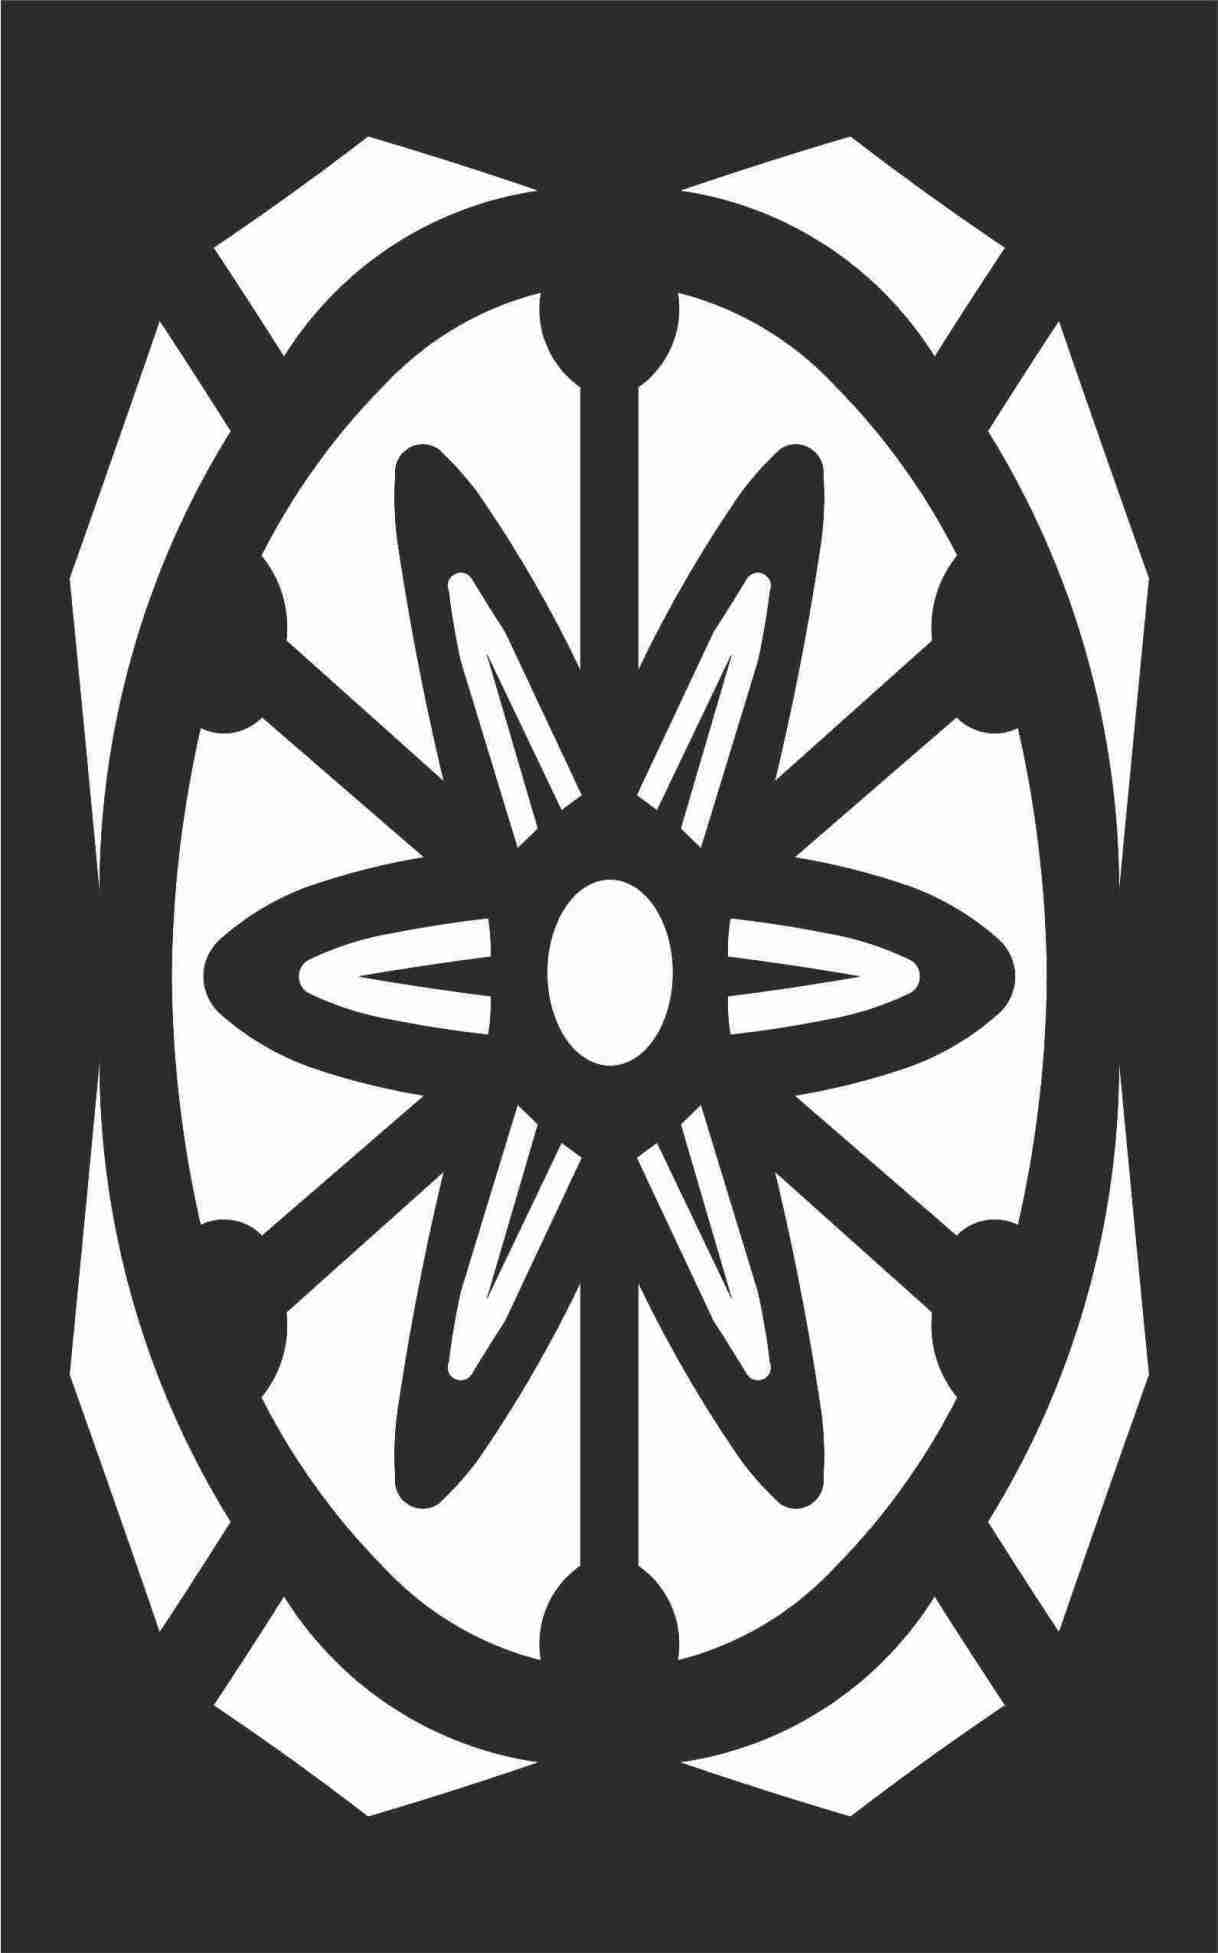 Decorative Screen Patterns For Laser Cutting 104 Free DXF File